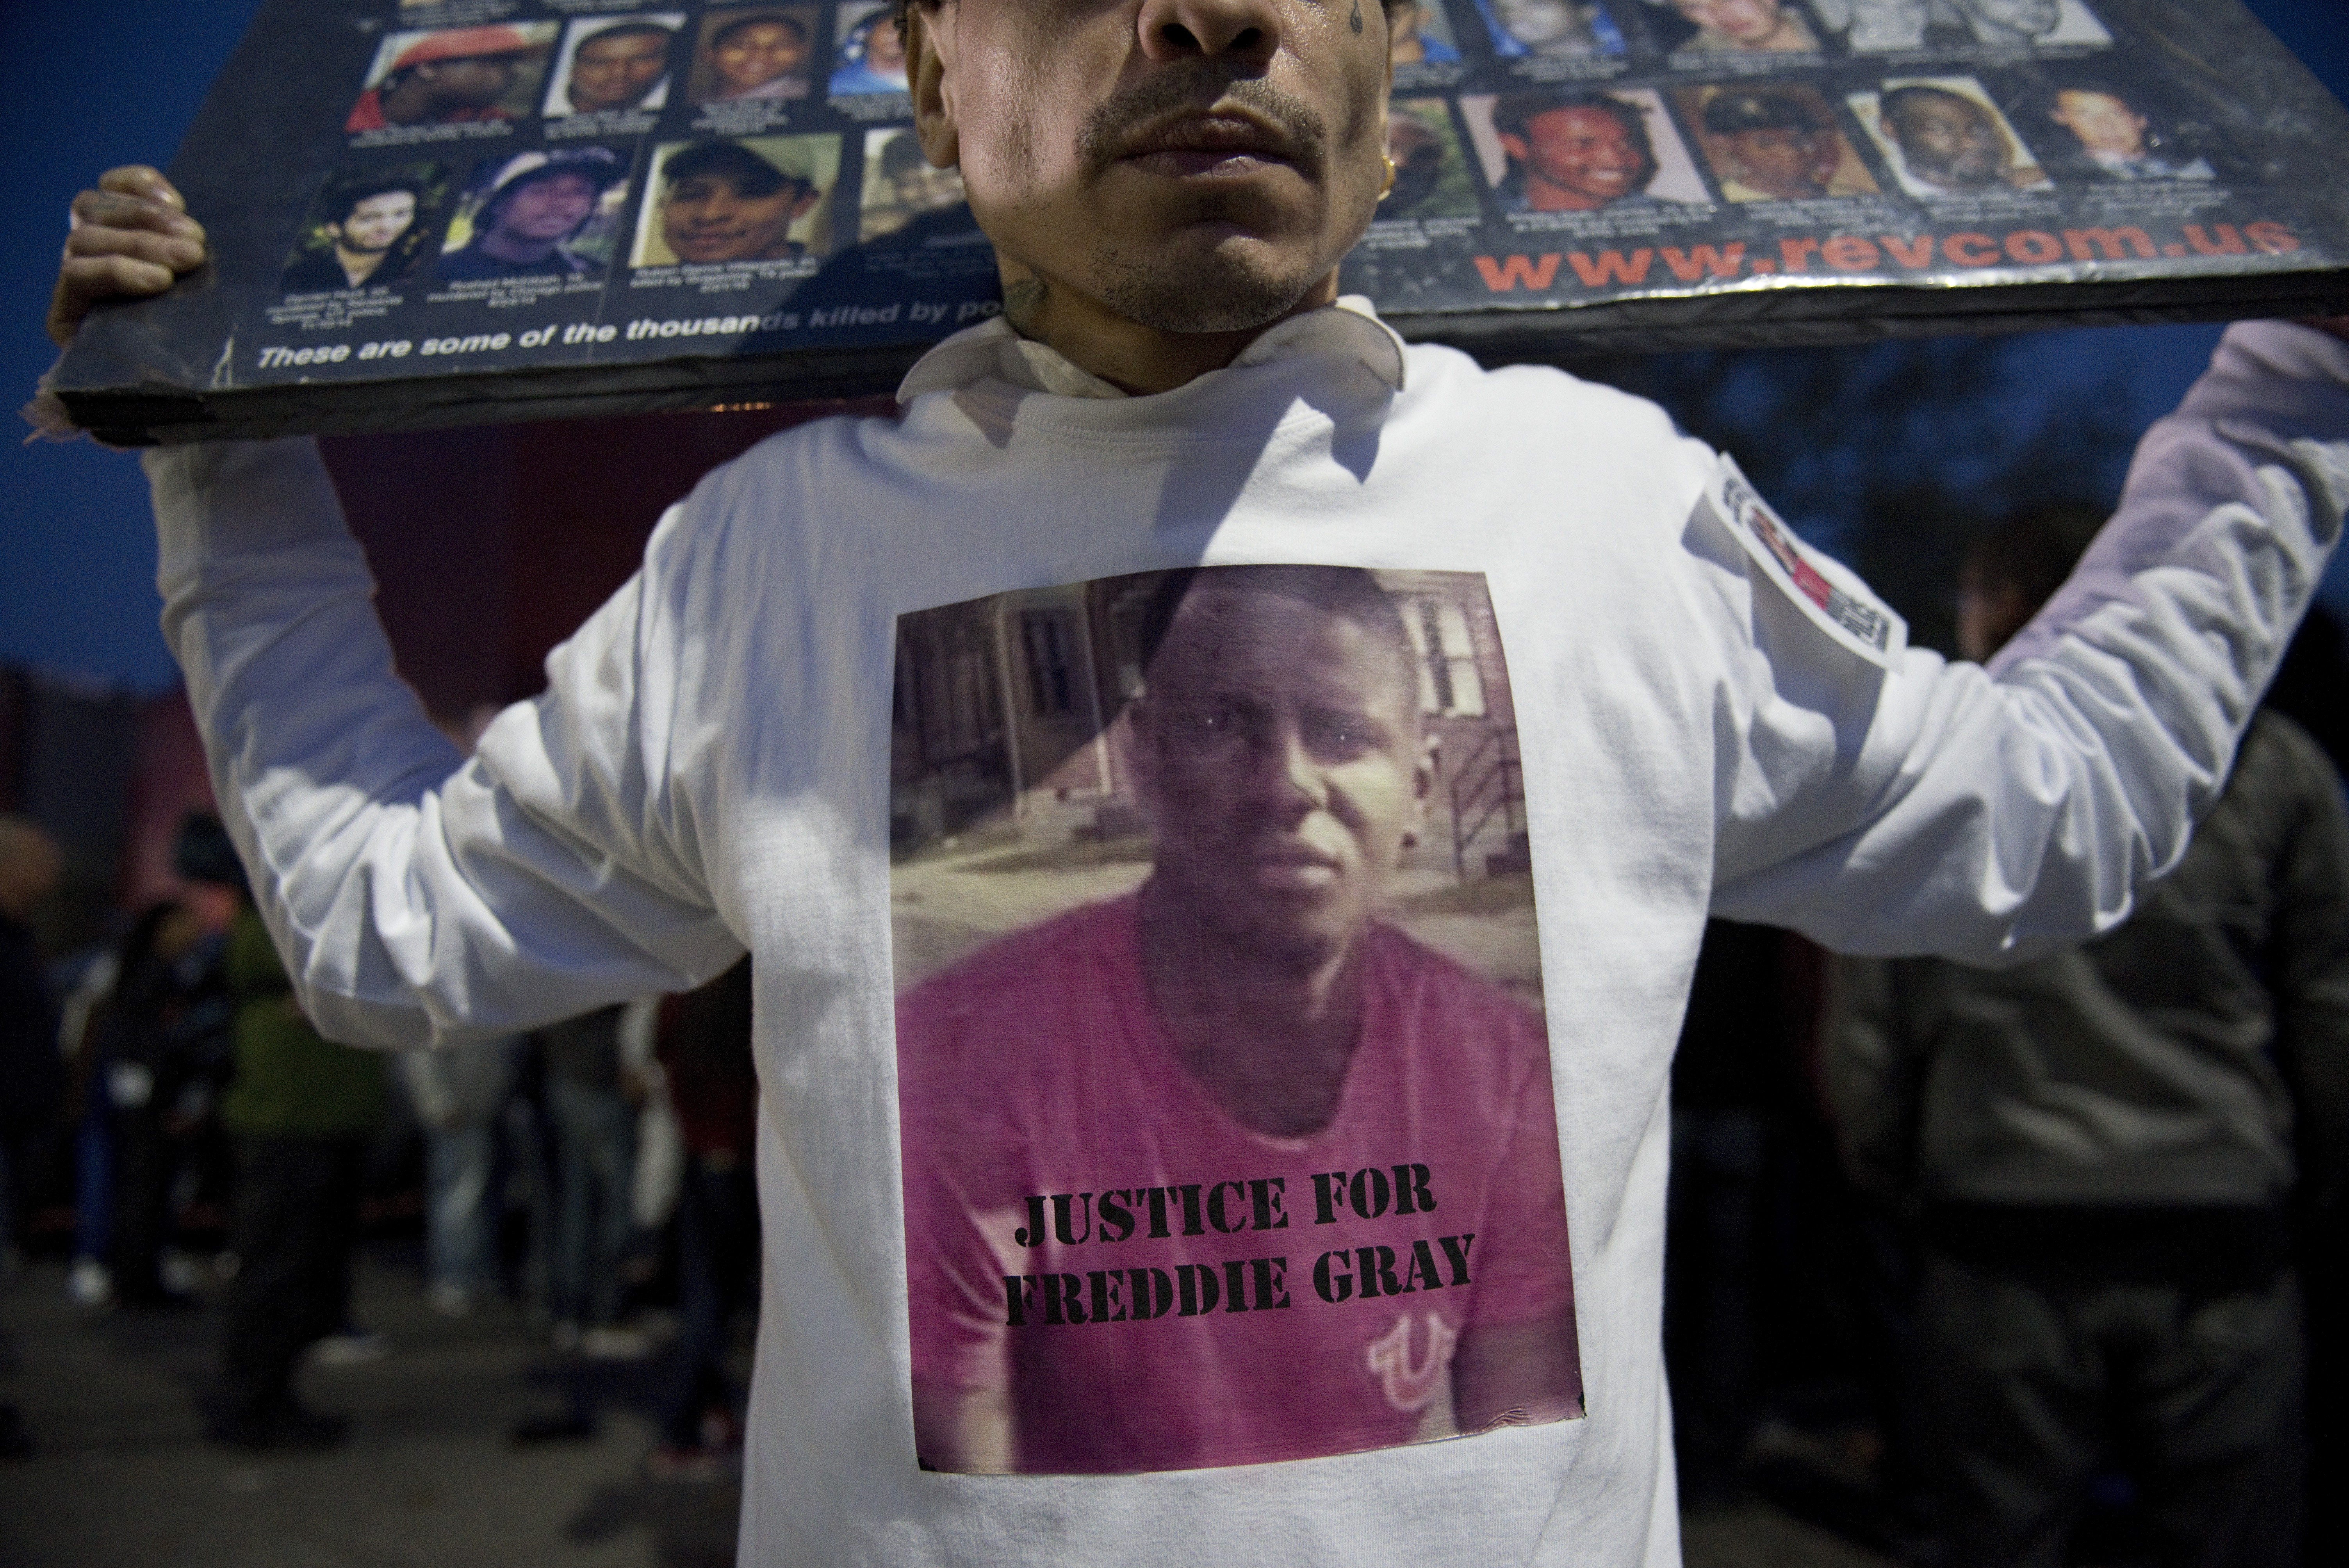 A protester holds a sign during a rally for Freddie Gray outside Baltimore Police Department Western District station in Baltimore on April 22, 2015.